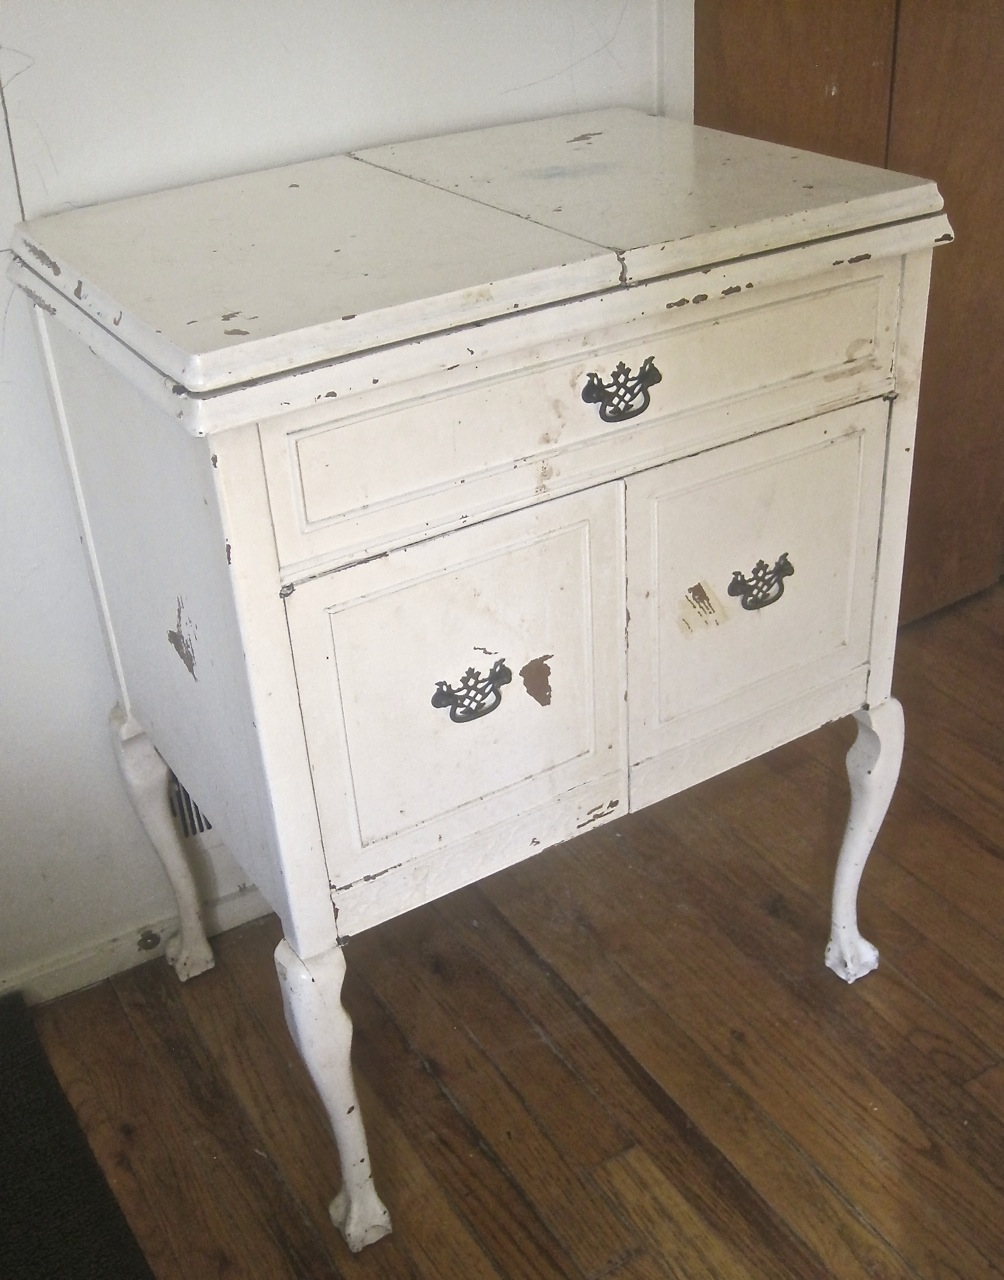 Sewing Machine Cabinet Makeover | The Project Lady